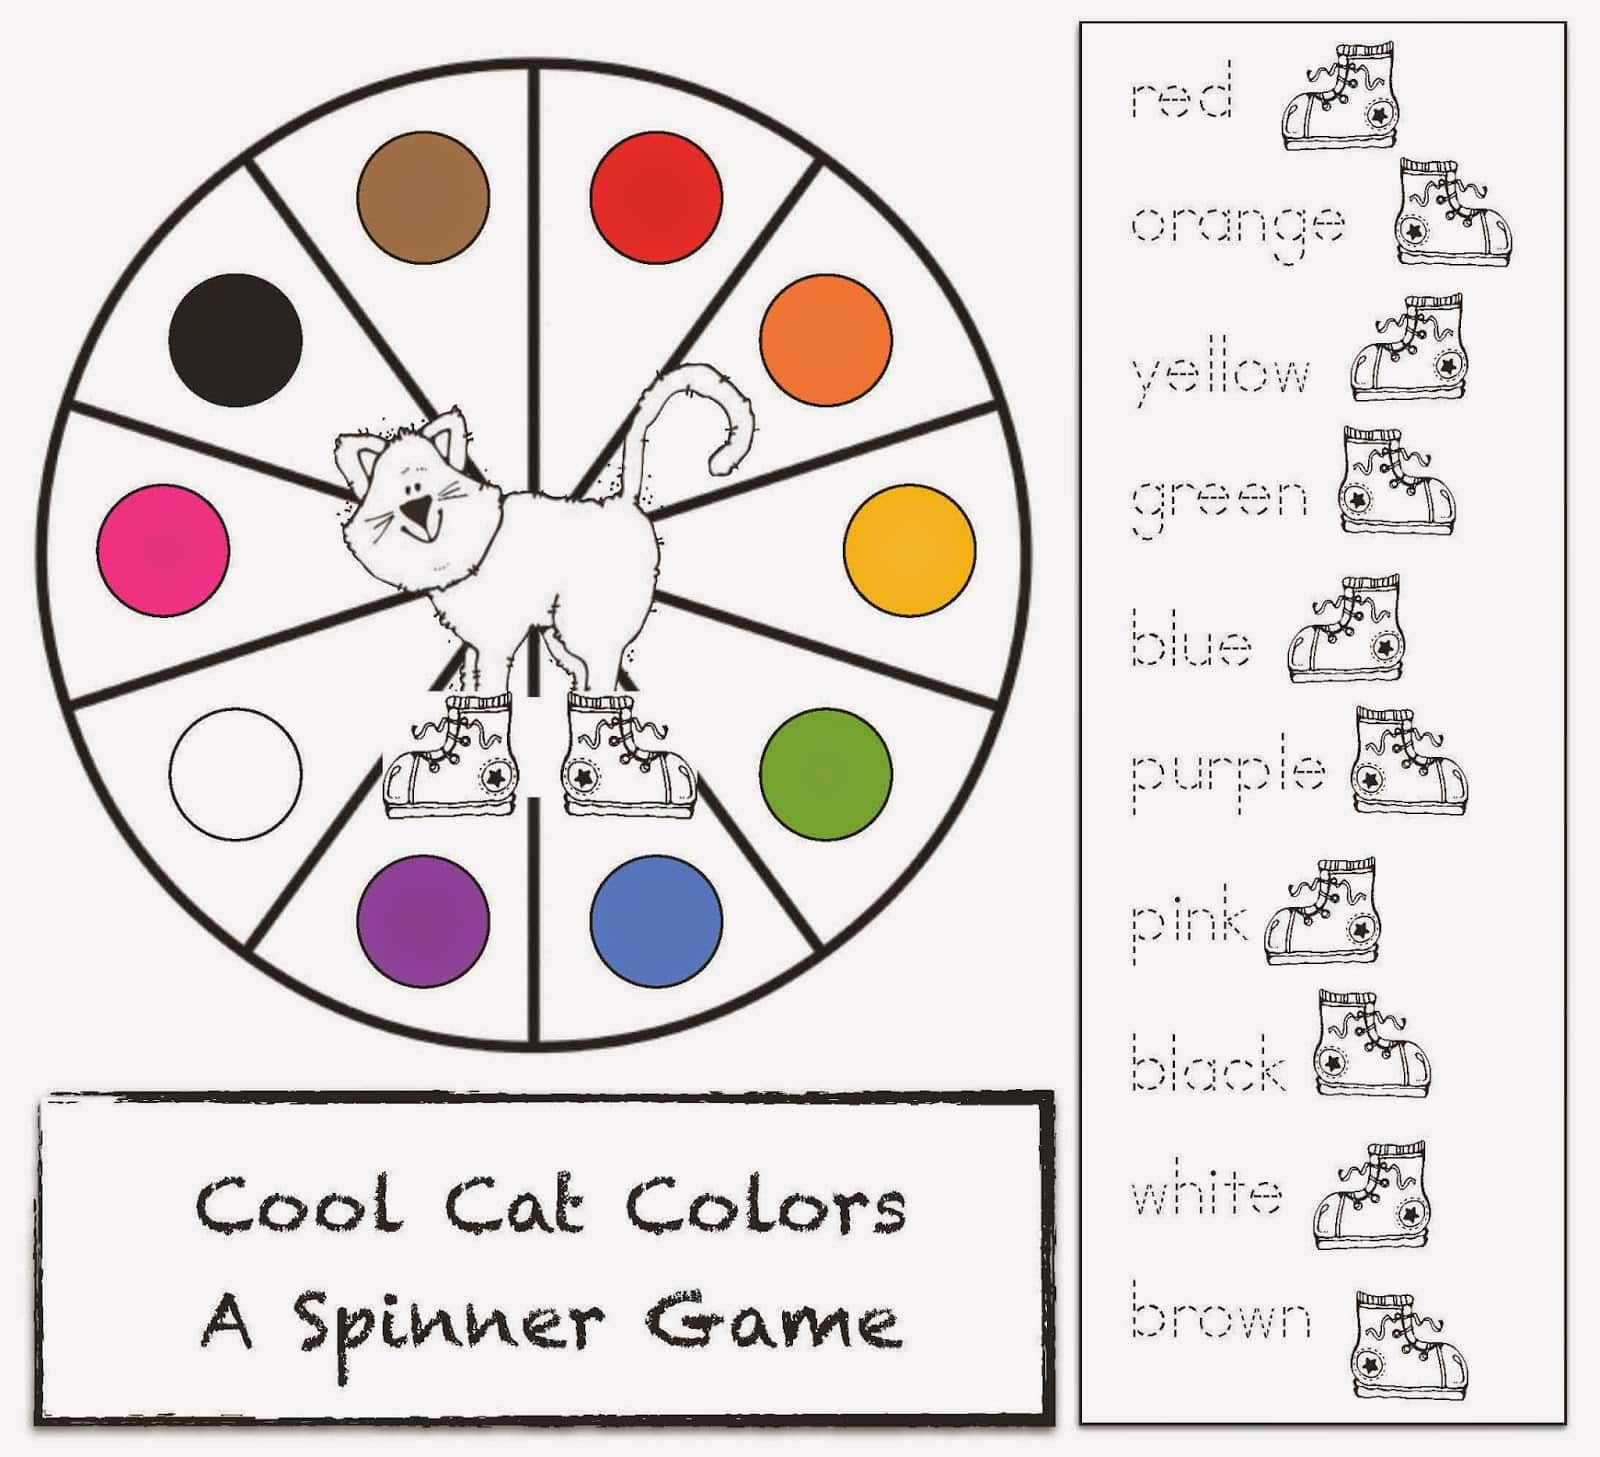 Pete the Cat Spinner Game For I Love My White Shoes ...